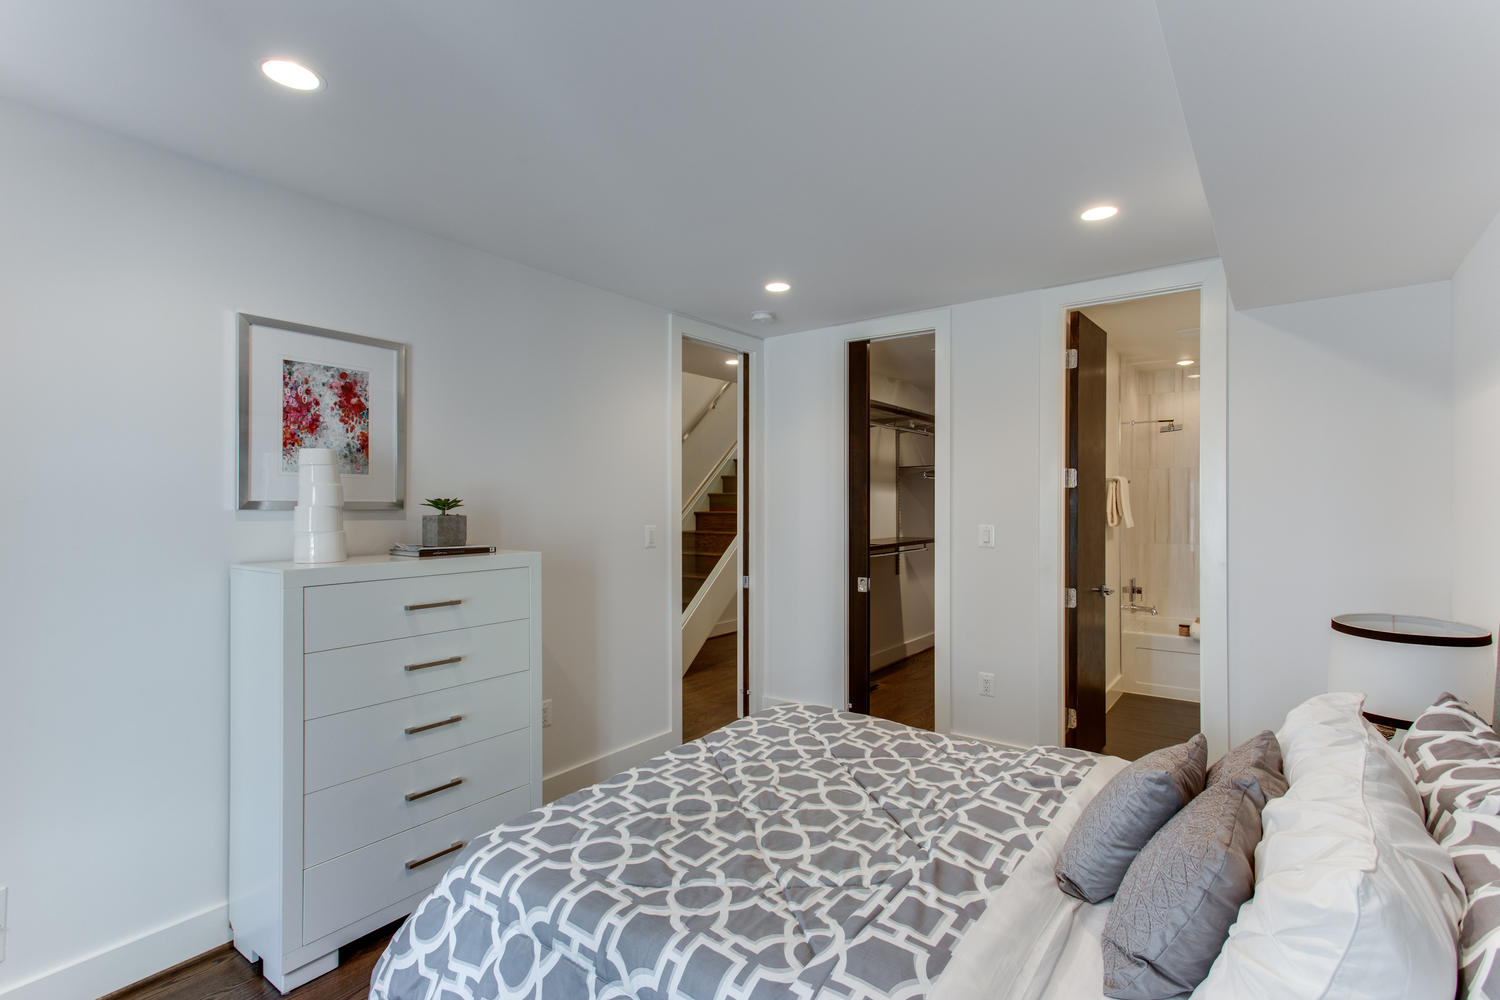 1524 Ogden St NW Unit 2-large-018-31-Bedroom-1500x1000-72dpi.jpg